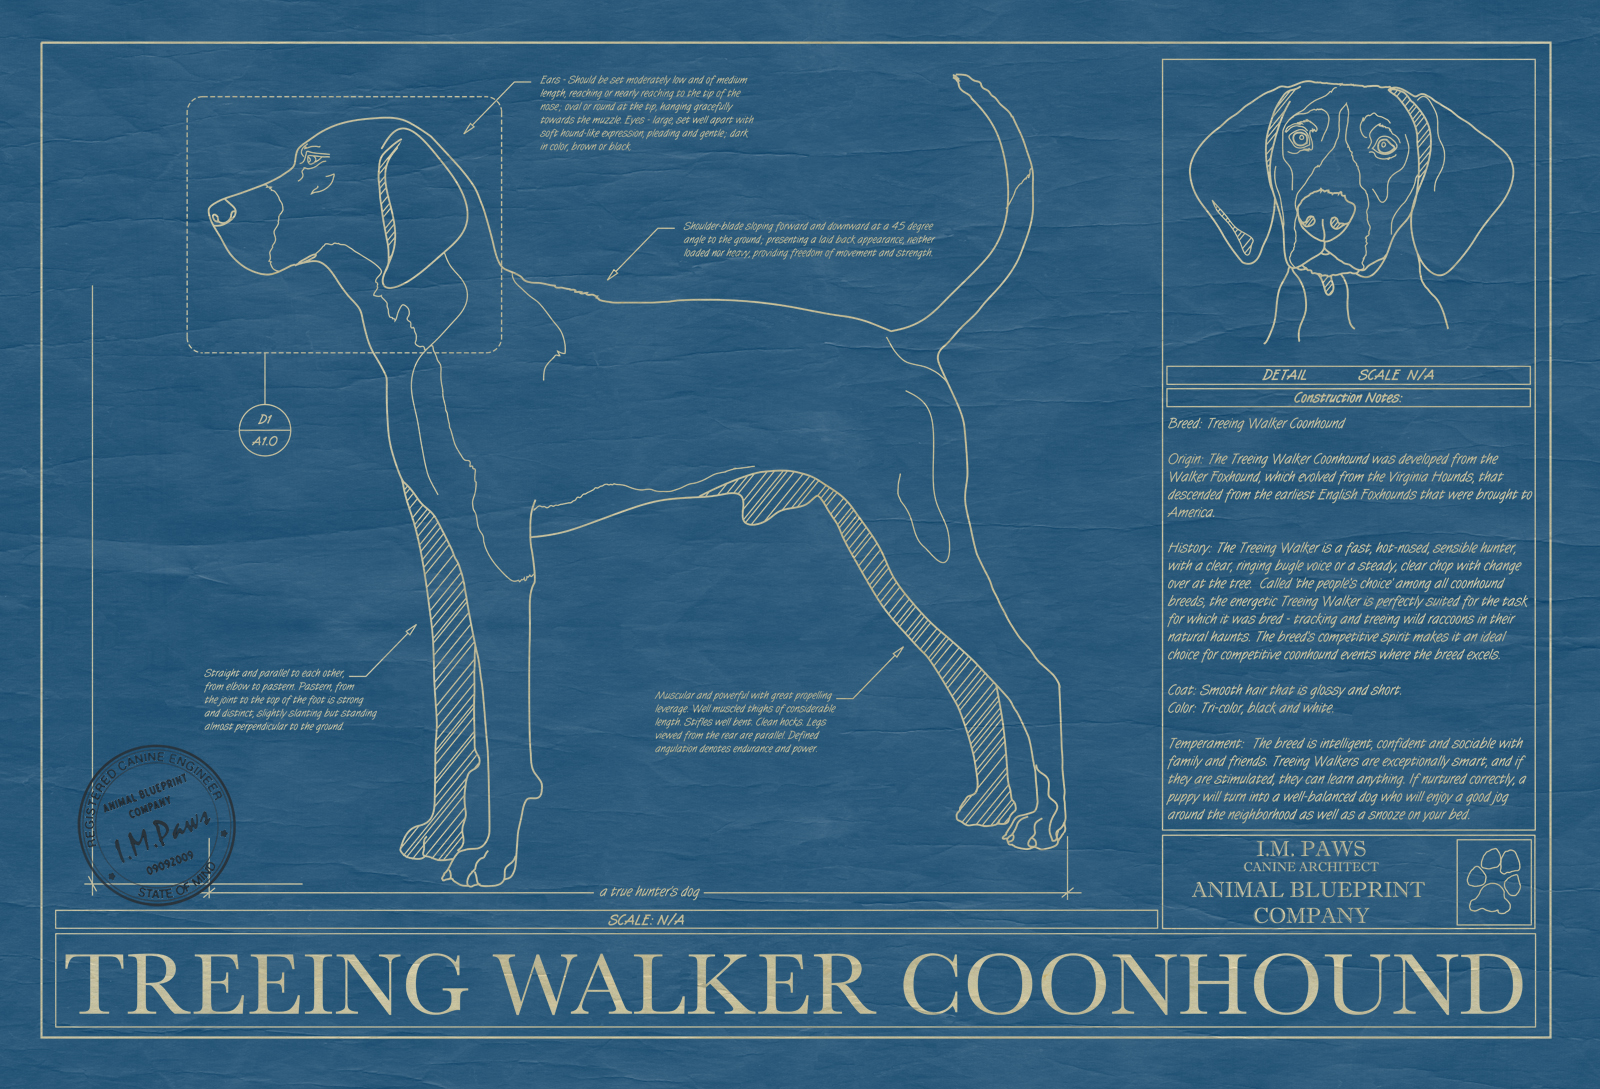 Treeing walker coonhound animal blueprint company treeing walker coonhound dog blueprint malvernweather Image collections